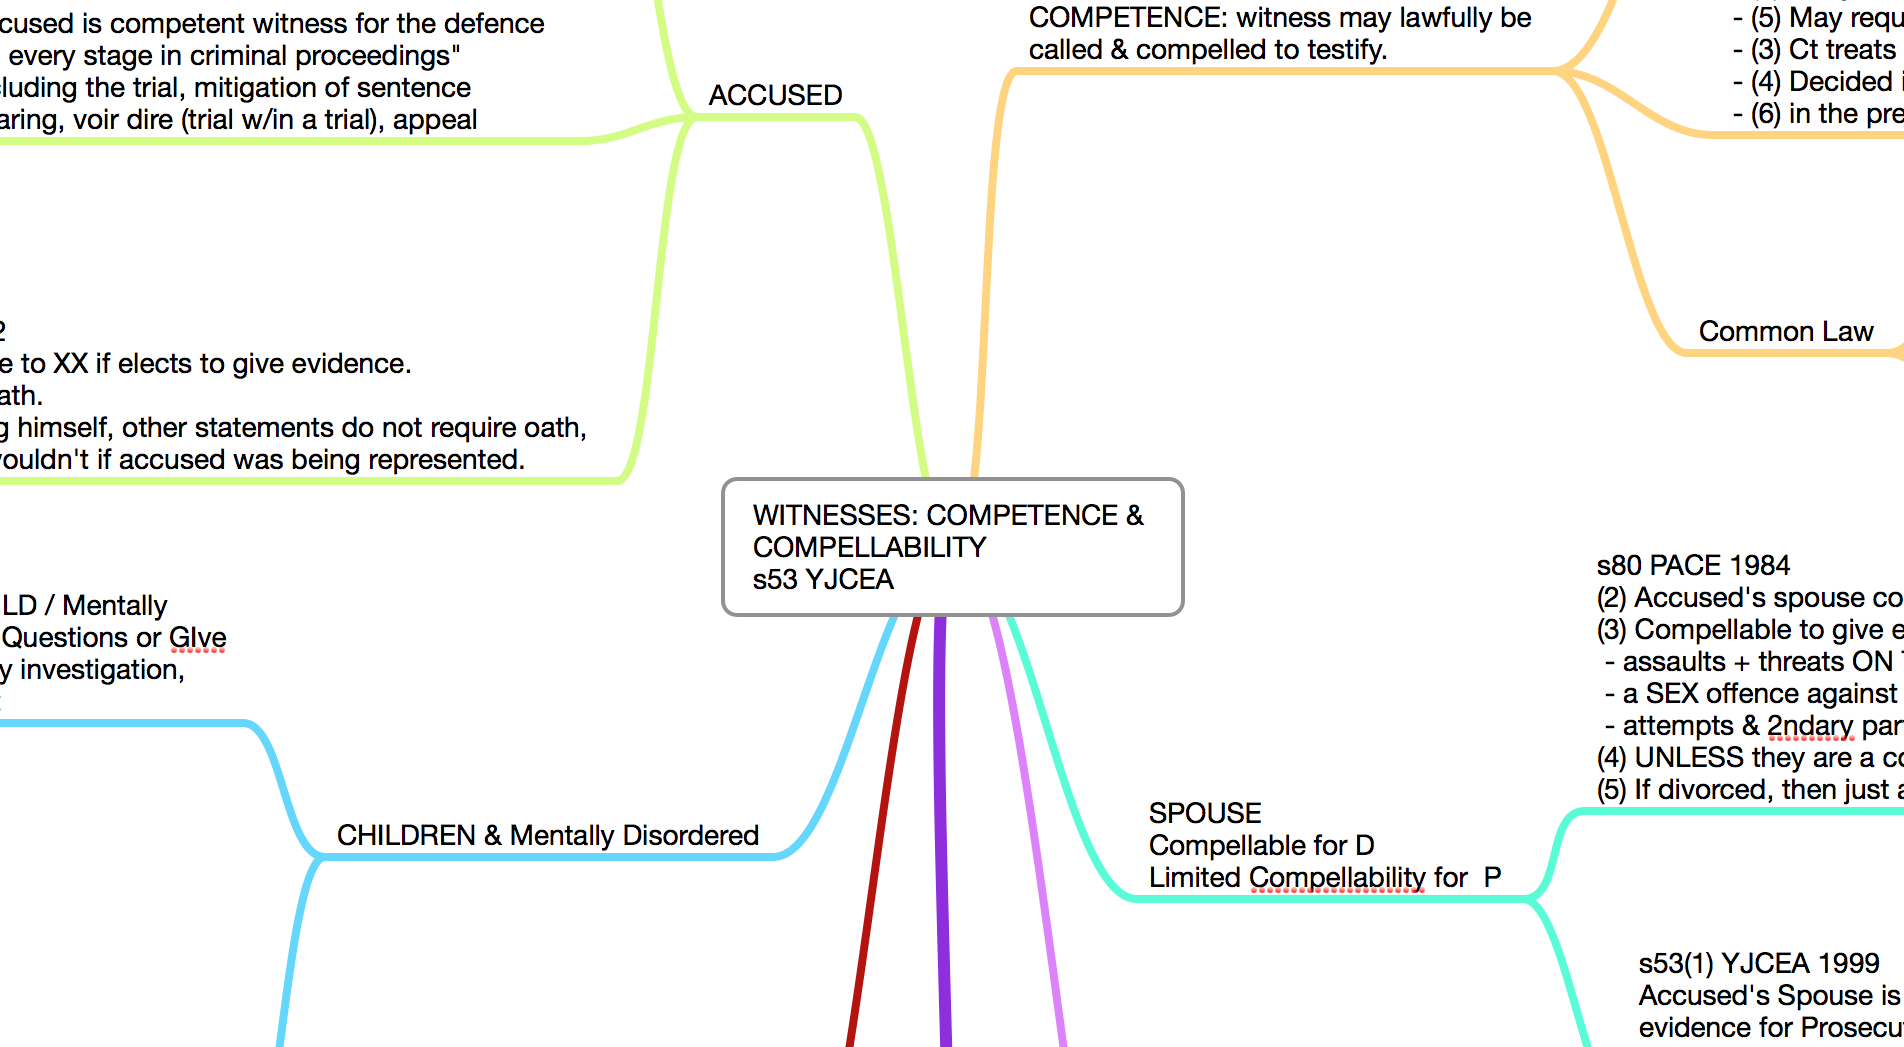 WITNESSES: COMPETENCE & COMPELLABILITY